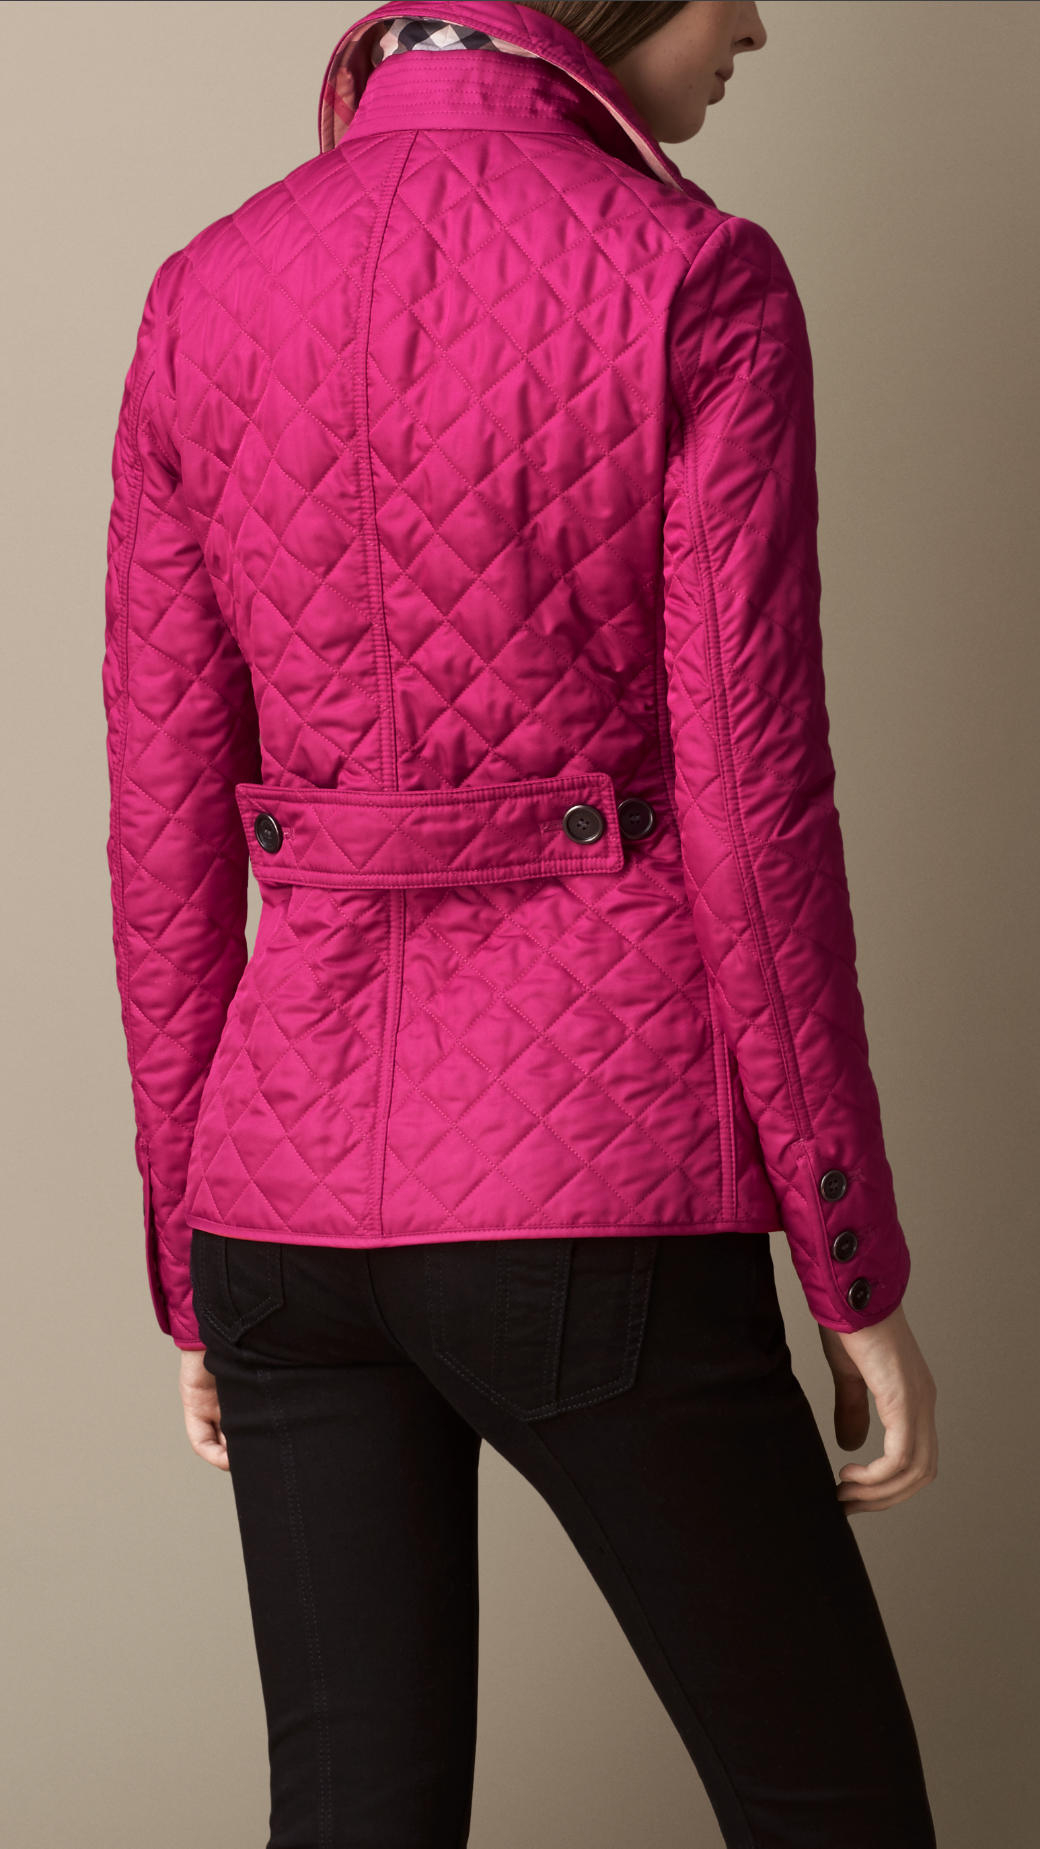 Burberry Diamond Quilted Jacket In Bright Magenta Pink